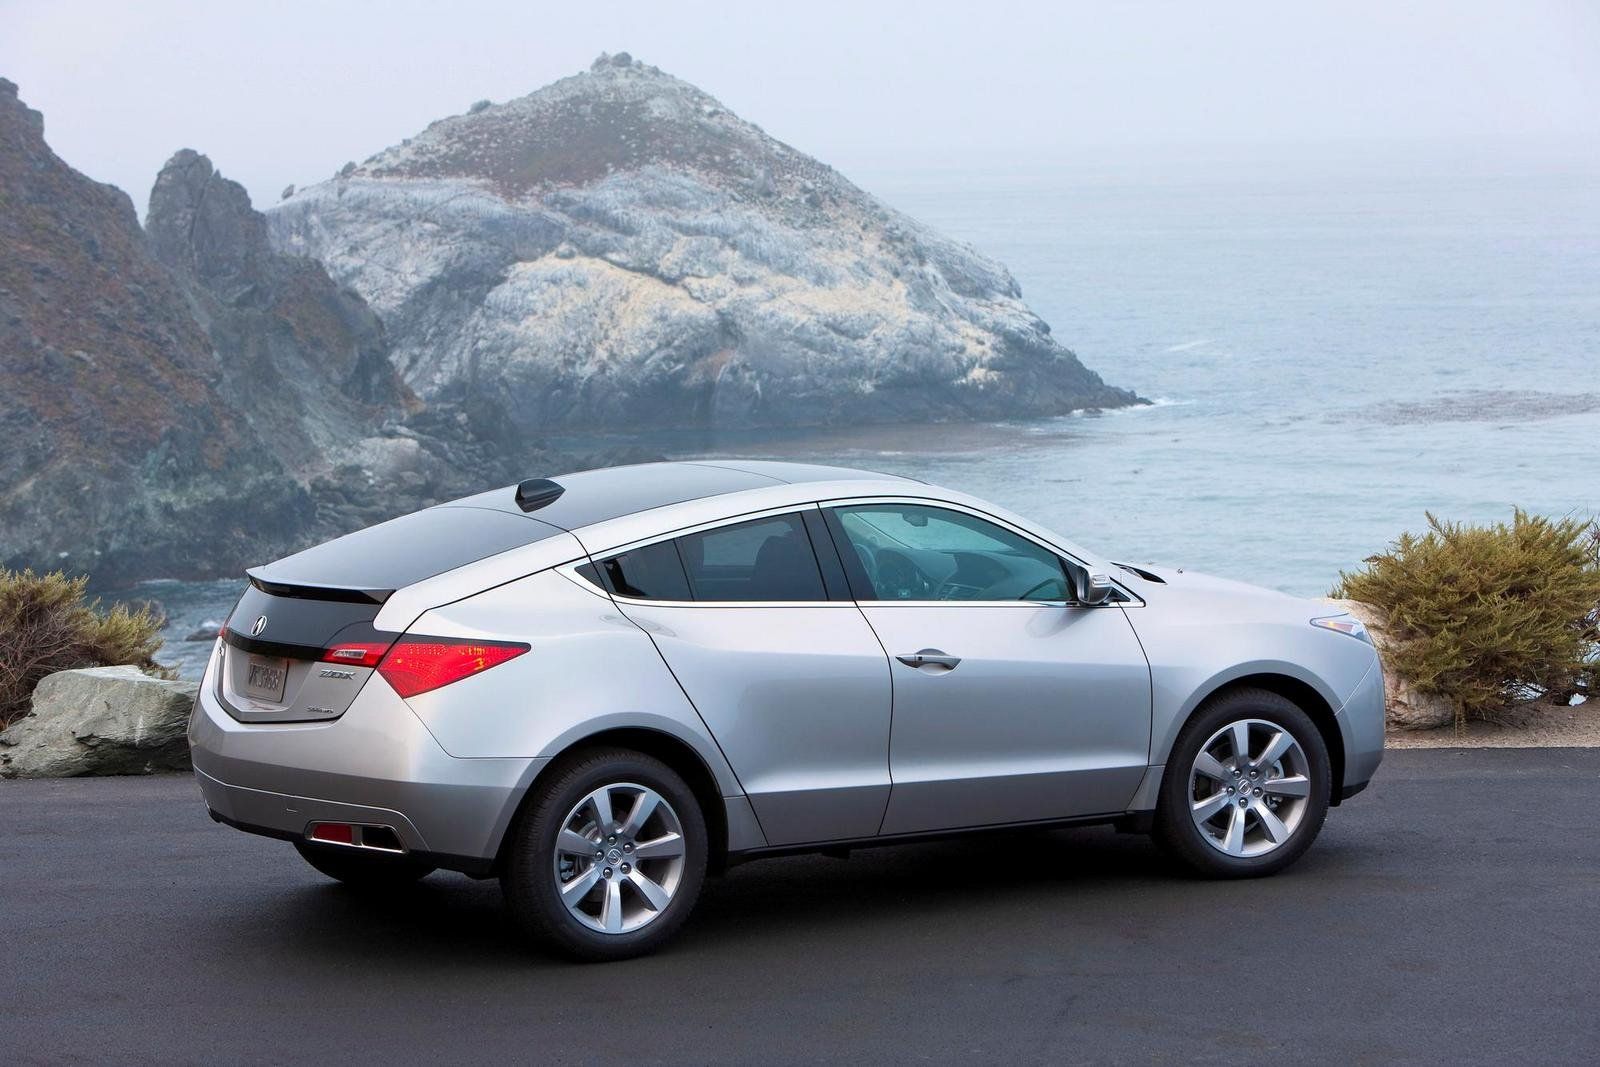 2011 acura zdx picture 387439 car review top speed. Black Bedroom Furniture Sets. Home Design Ideas